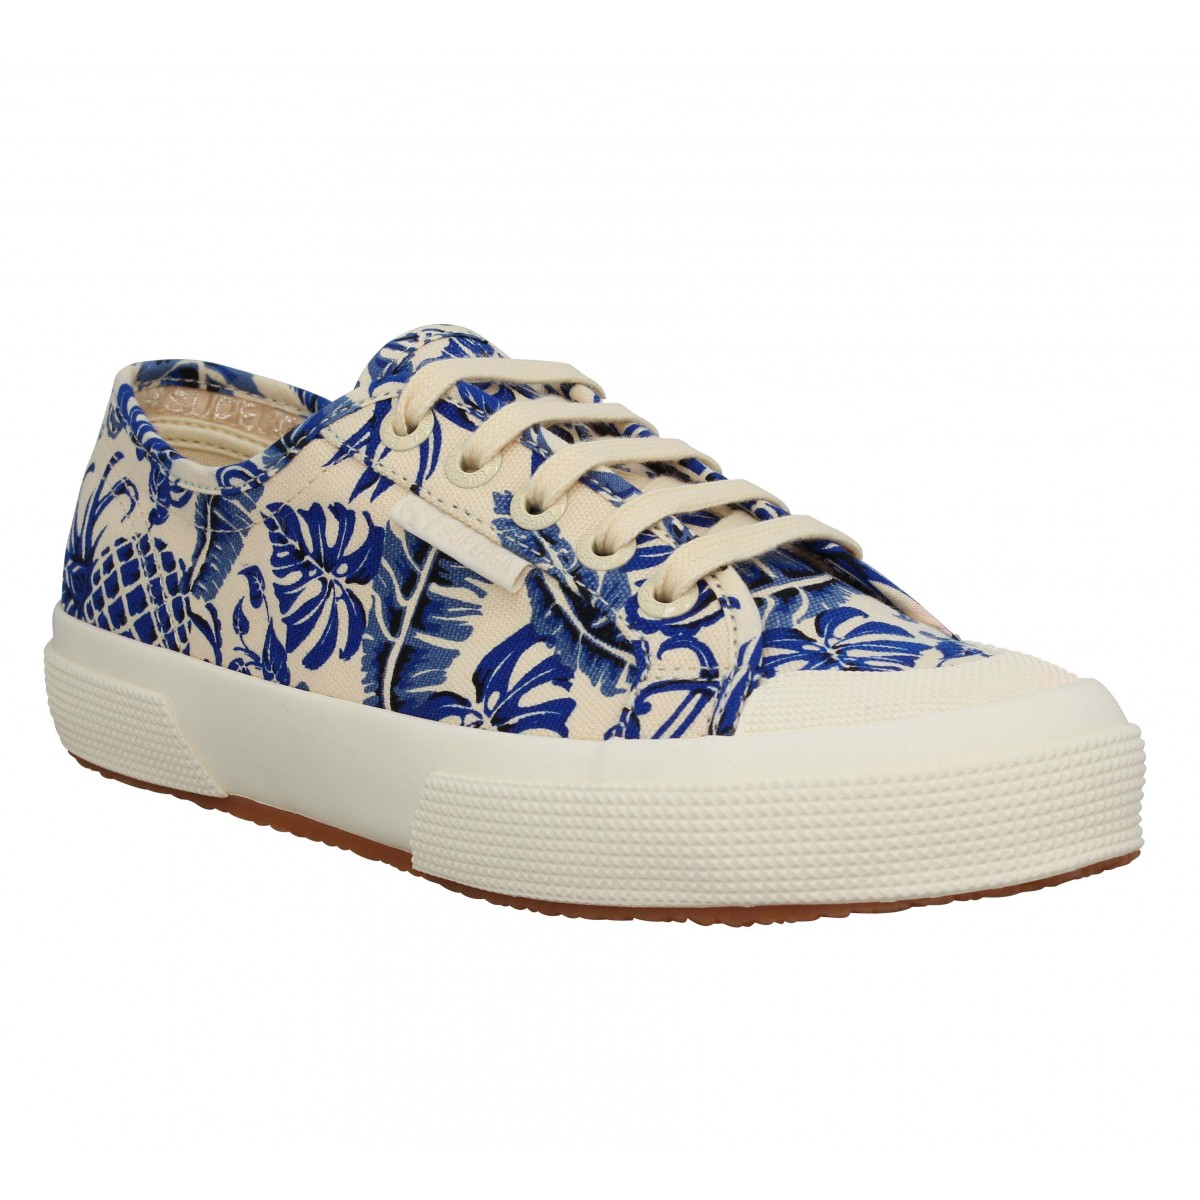 Baskets SUPERGA 2294 toile Femme Beige Pineapple